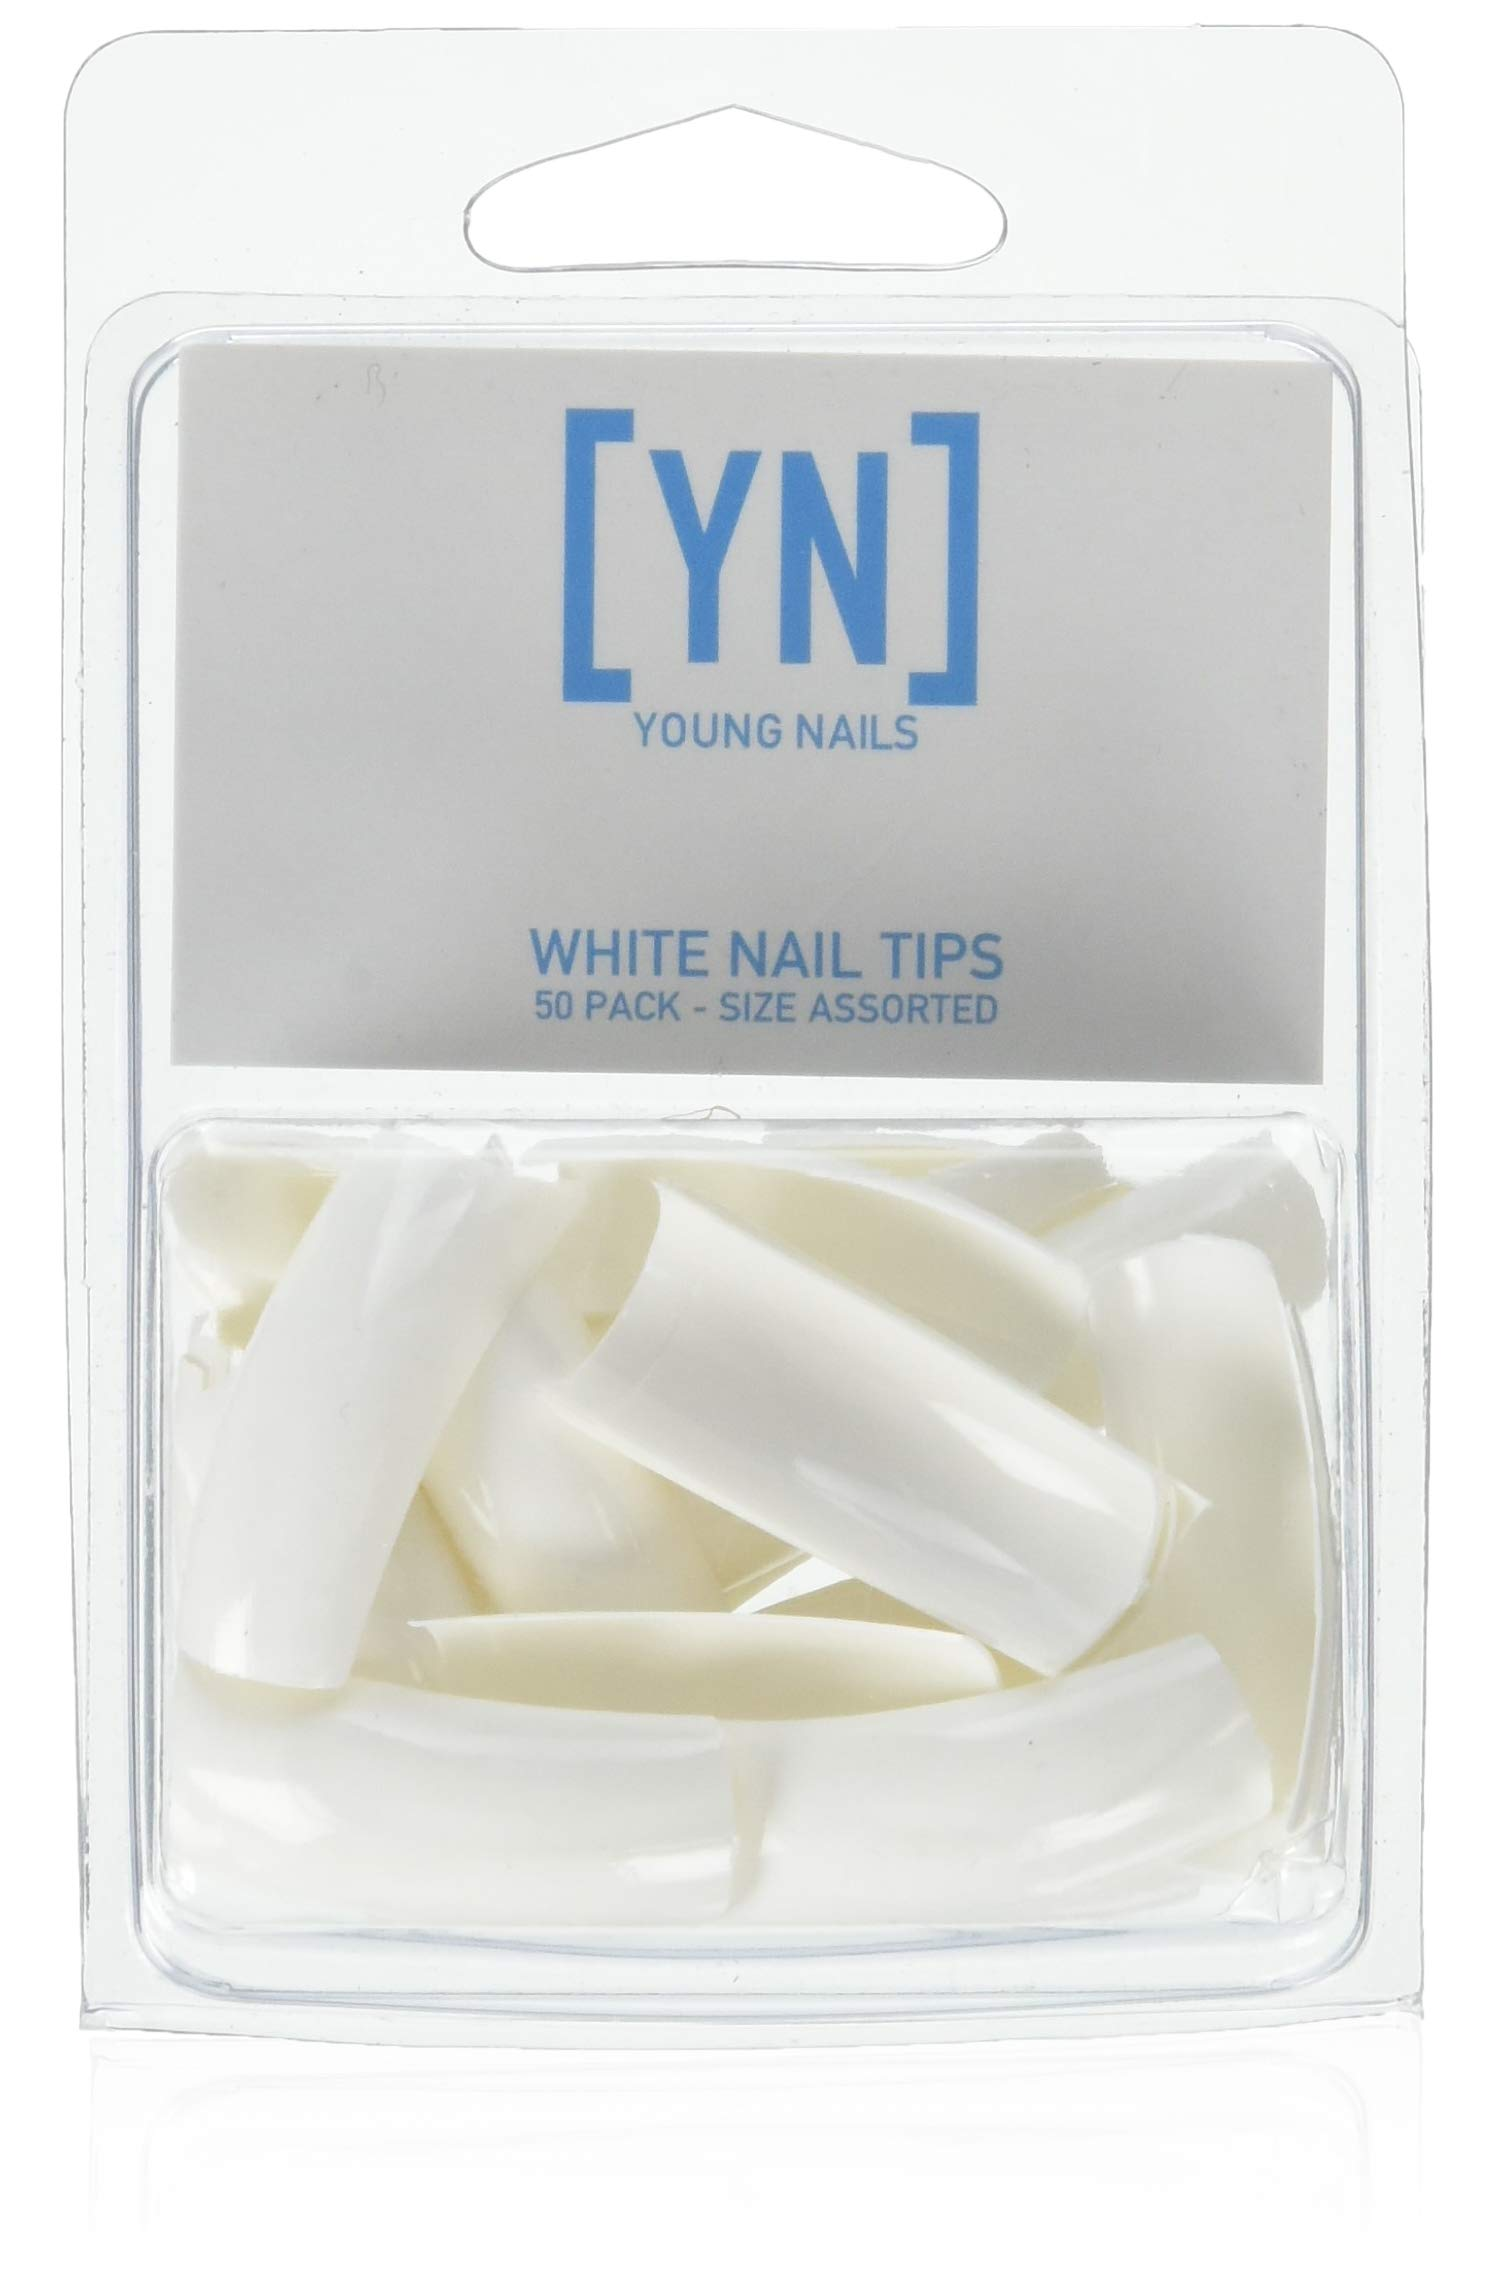 YOUNG NAILS 50 Piece Assorted Clear Nail Tips, White, 18 g. by Young Nails